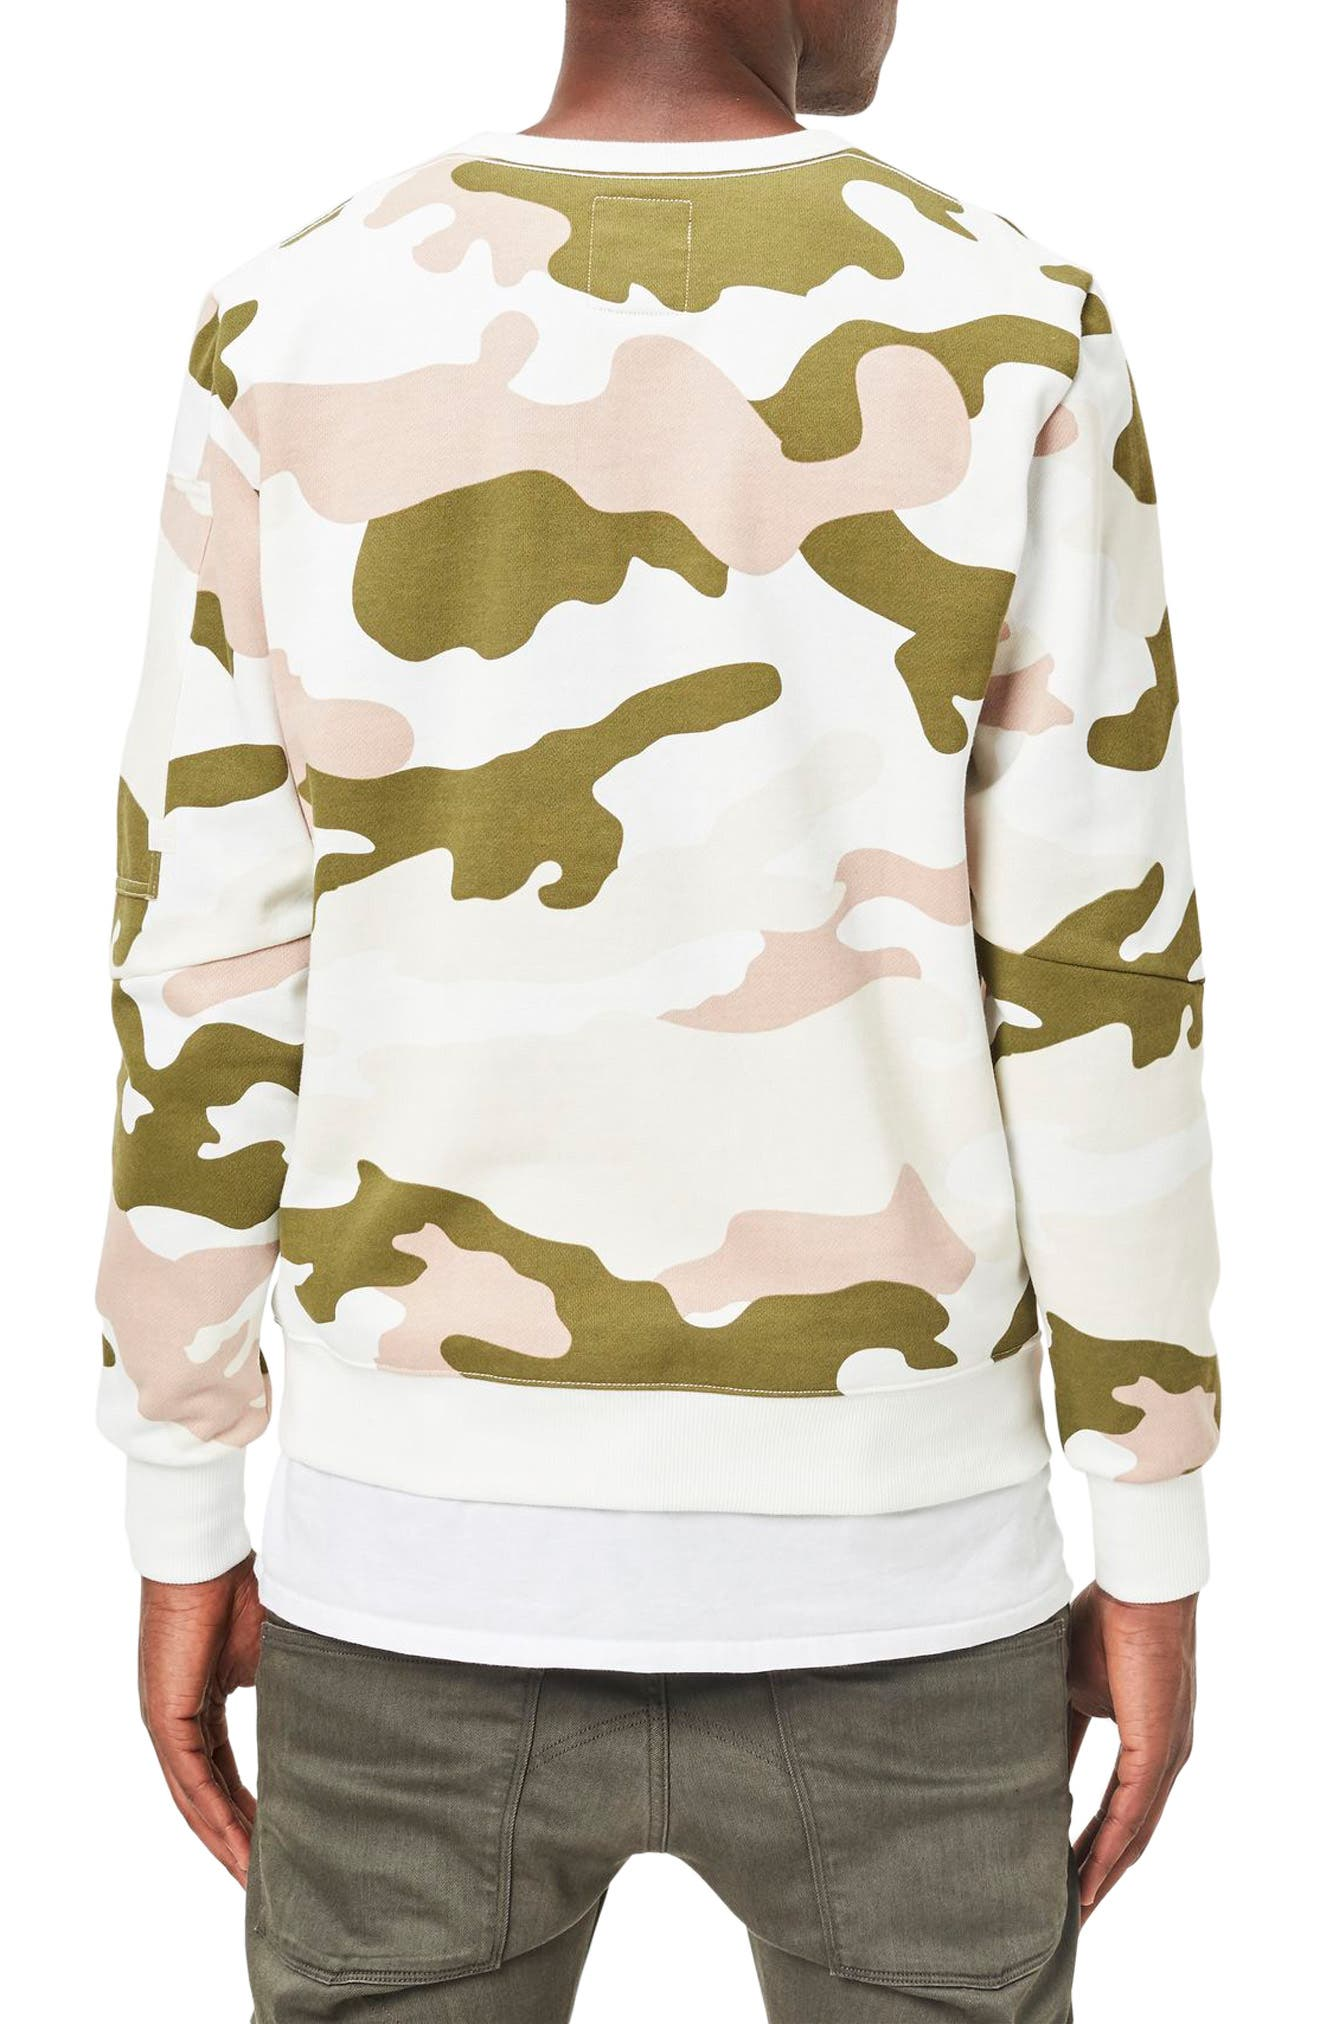 Stalt Camo Sweatshirt,                             Alternate thumbnail 2, color,